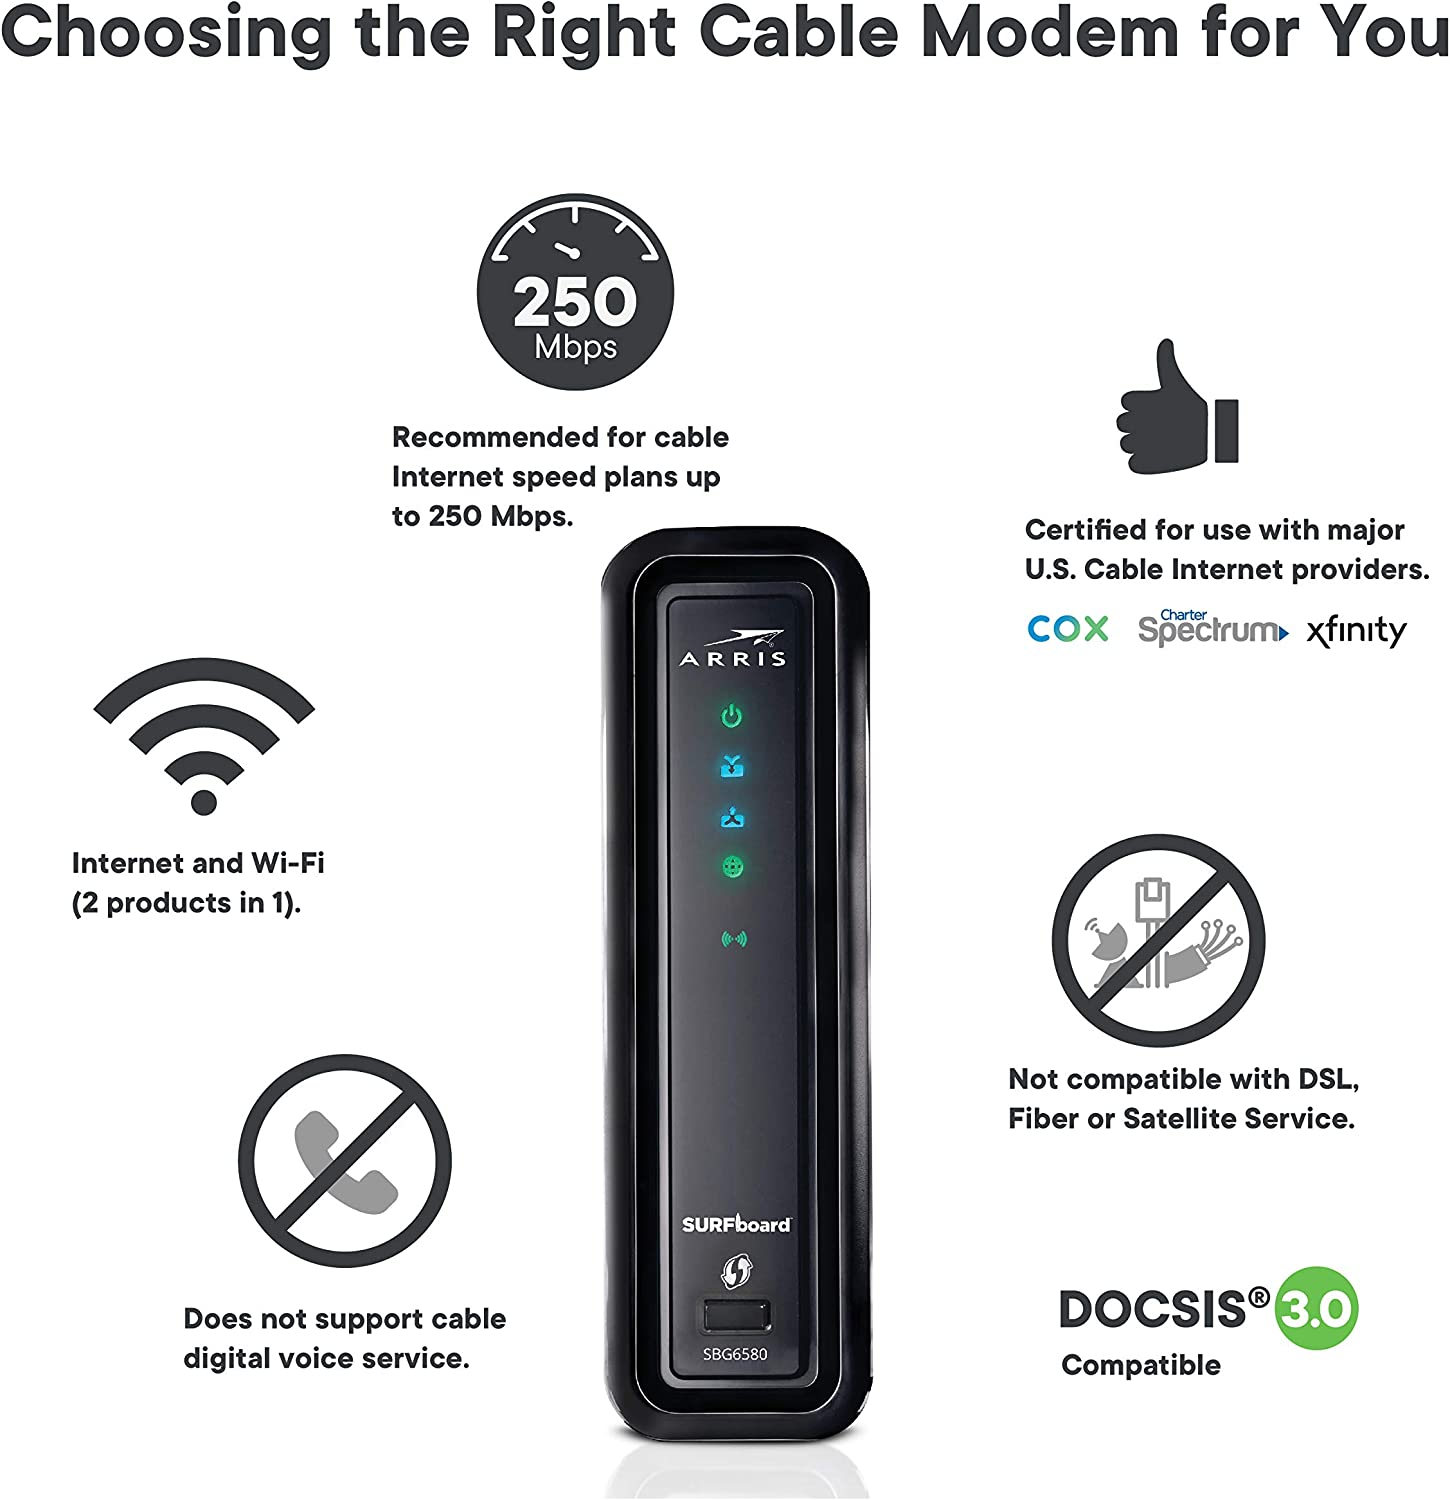 COX MOTOROLA SBG6580 DOCSIS 3.0 Cable Modem Router COMCAST XFINITY,TIME WARNER